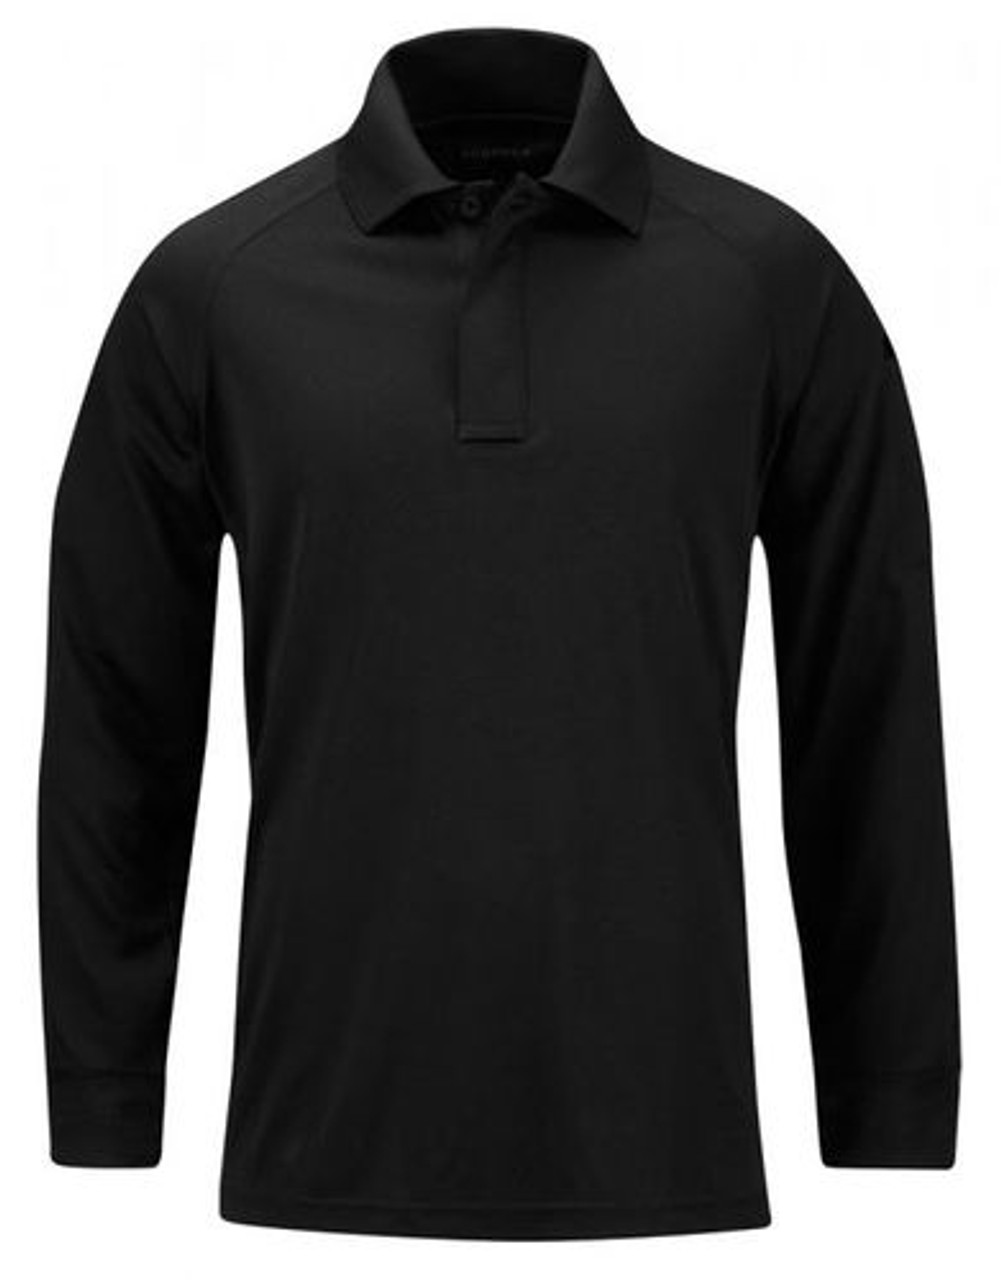 Propper® F5362 Men's Snag-Free Tactical Polo, Long Sleeve, 100% Polyester, Shoulder Mic Loop, Sternum Mic Loop, For Casual or Uniform use, available in black, grey, silver tan, green and LAPD Navy